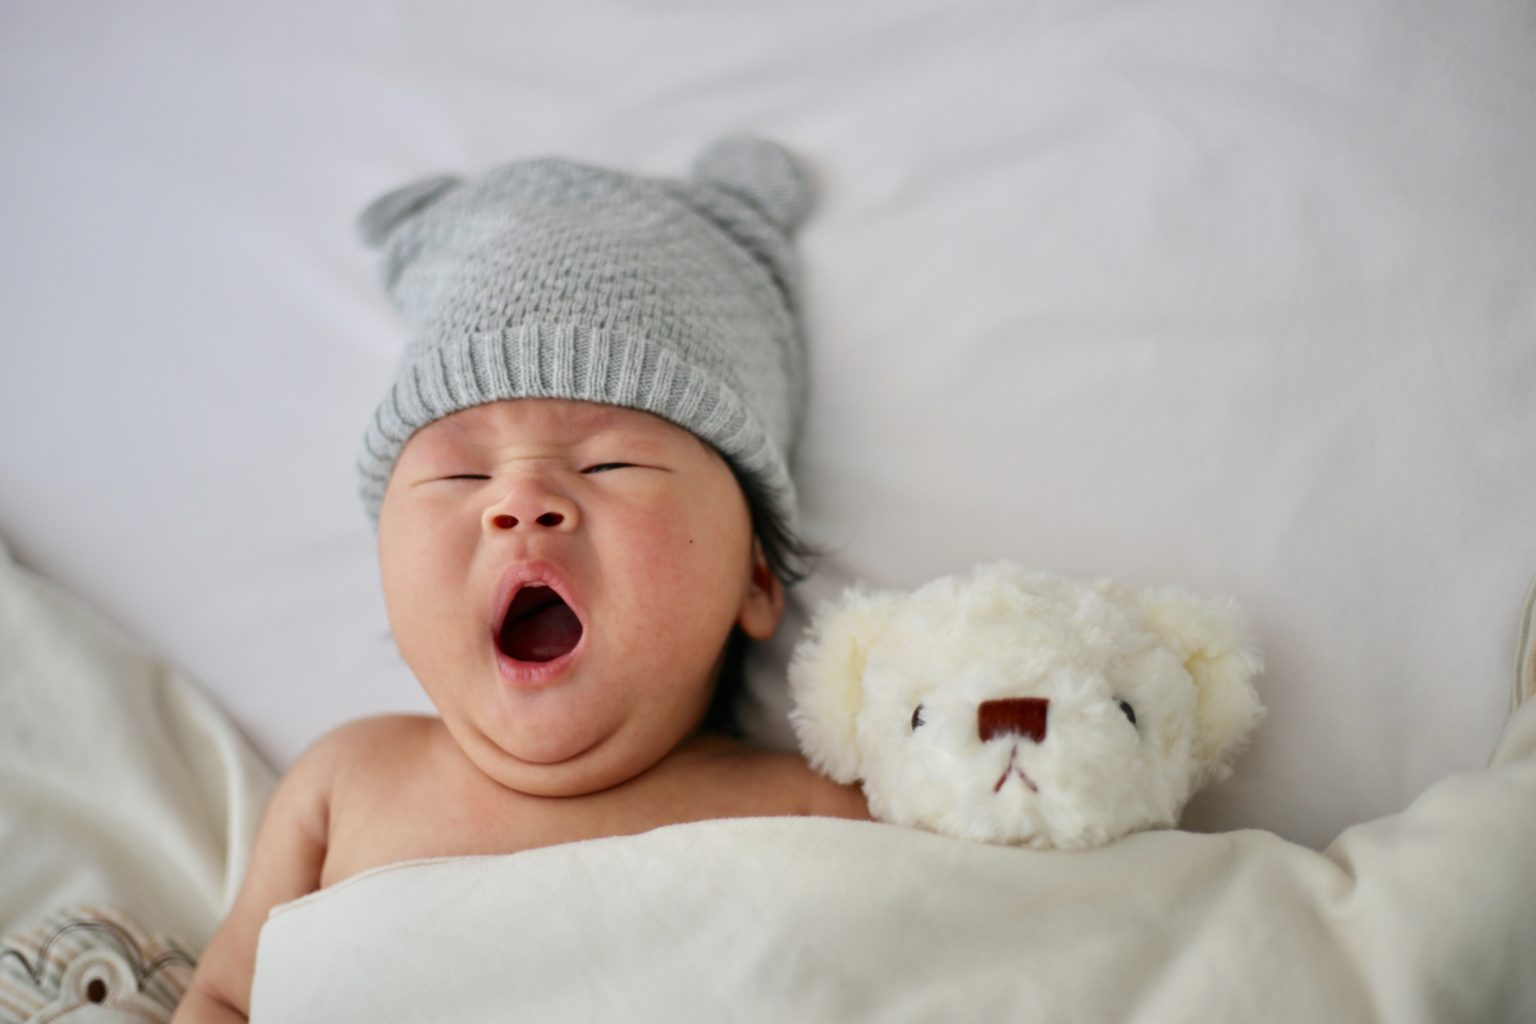 Small baby yawning with a grey beanie and a stuffed teddy tucked in bed next to it